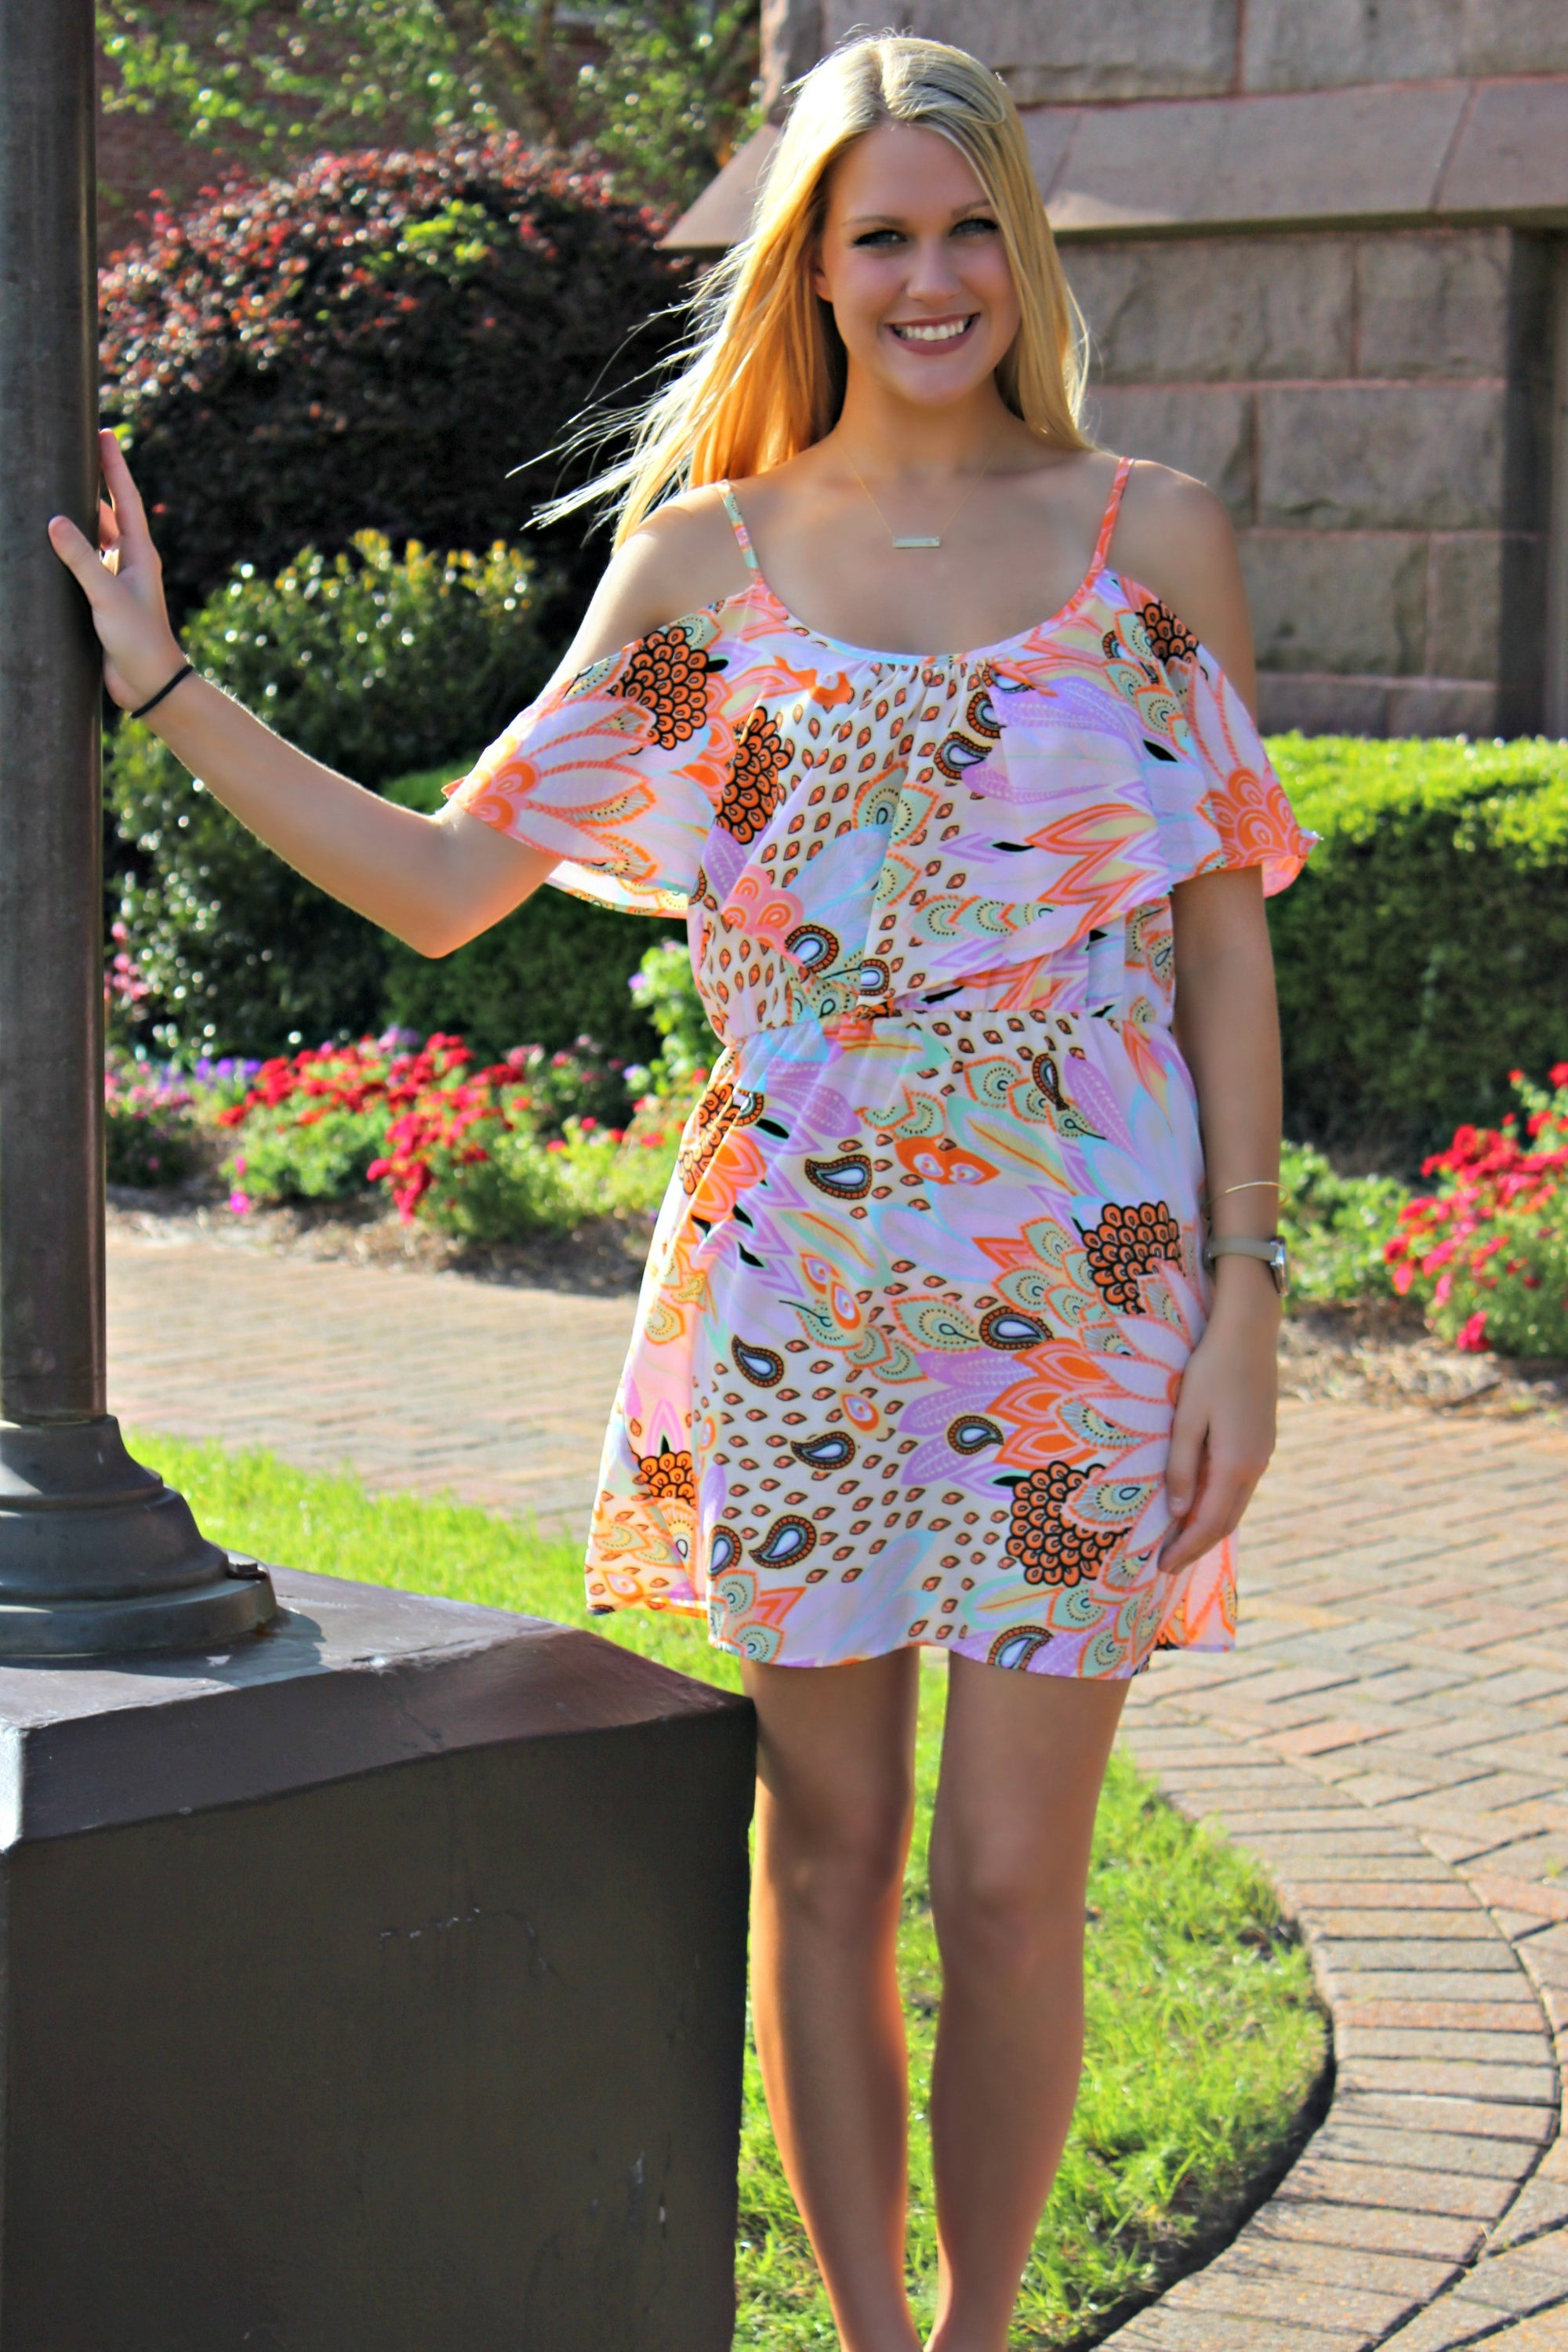 Glam: Lyza Floral Dress, Multi